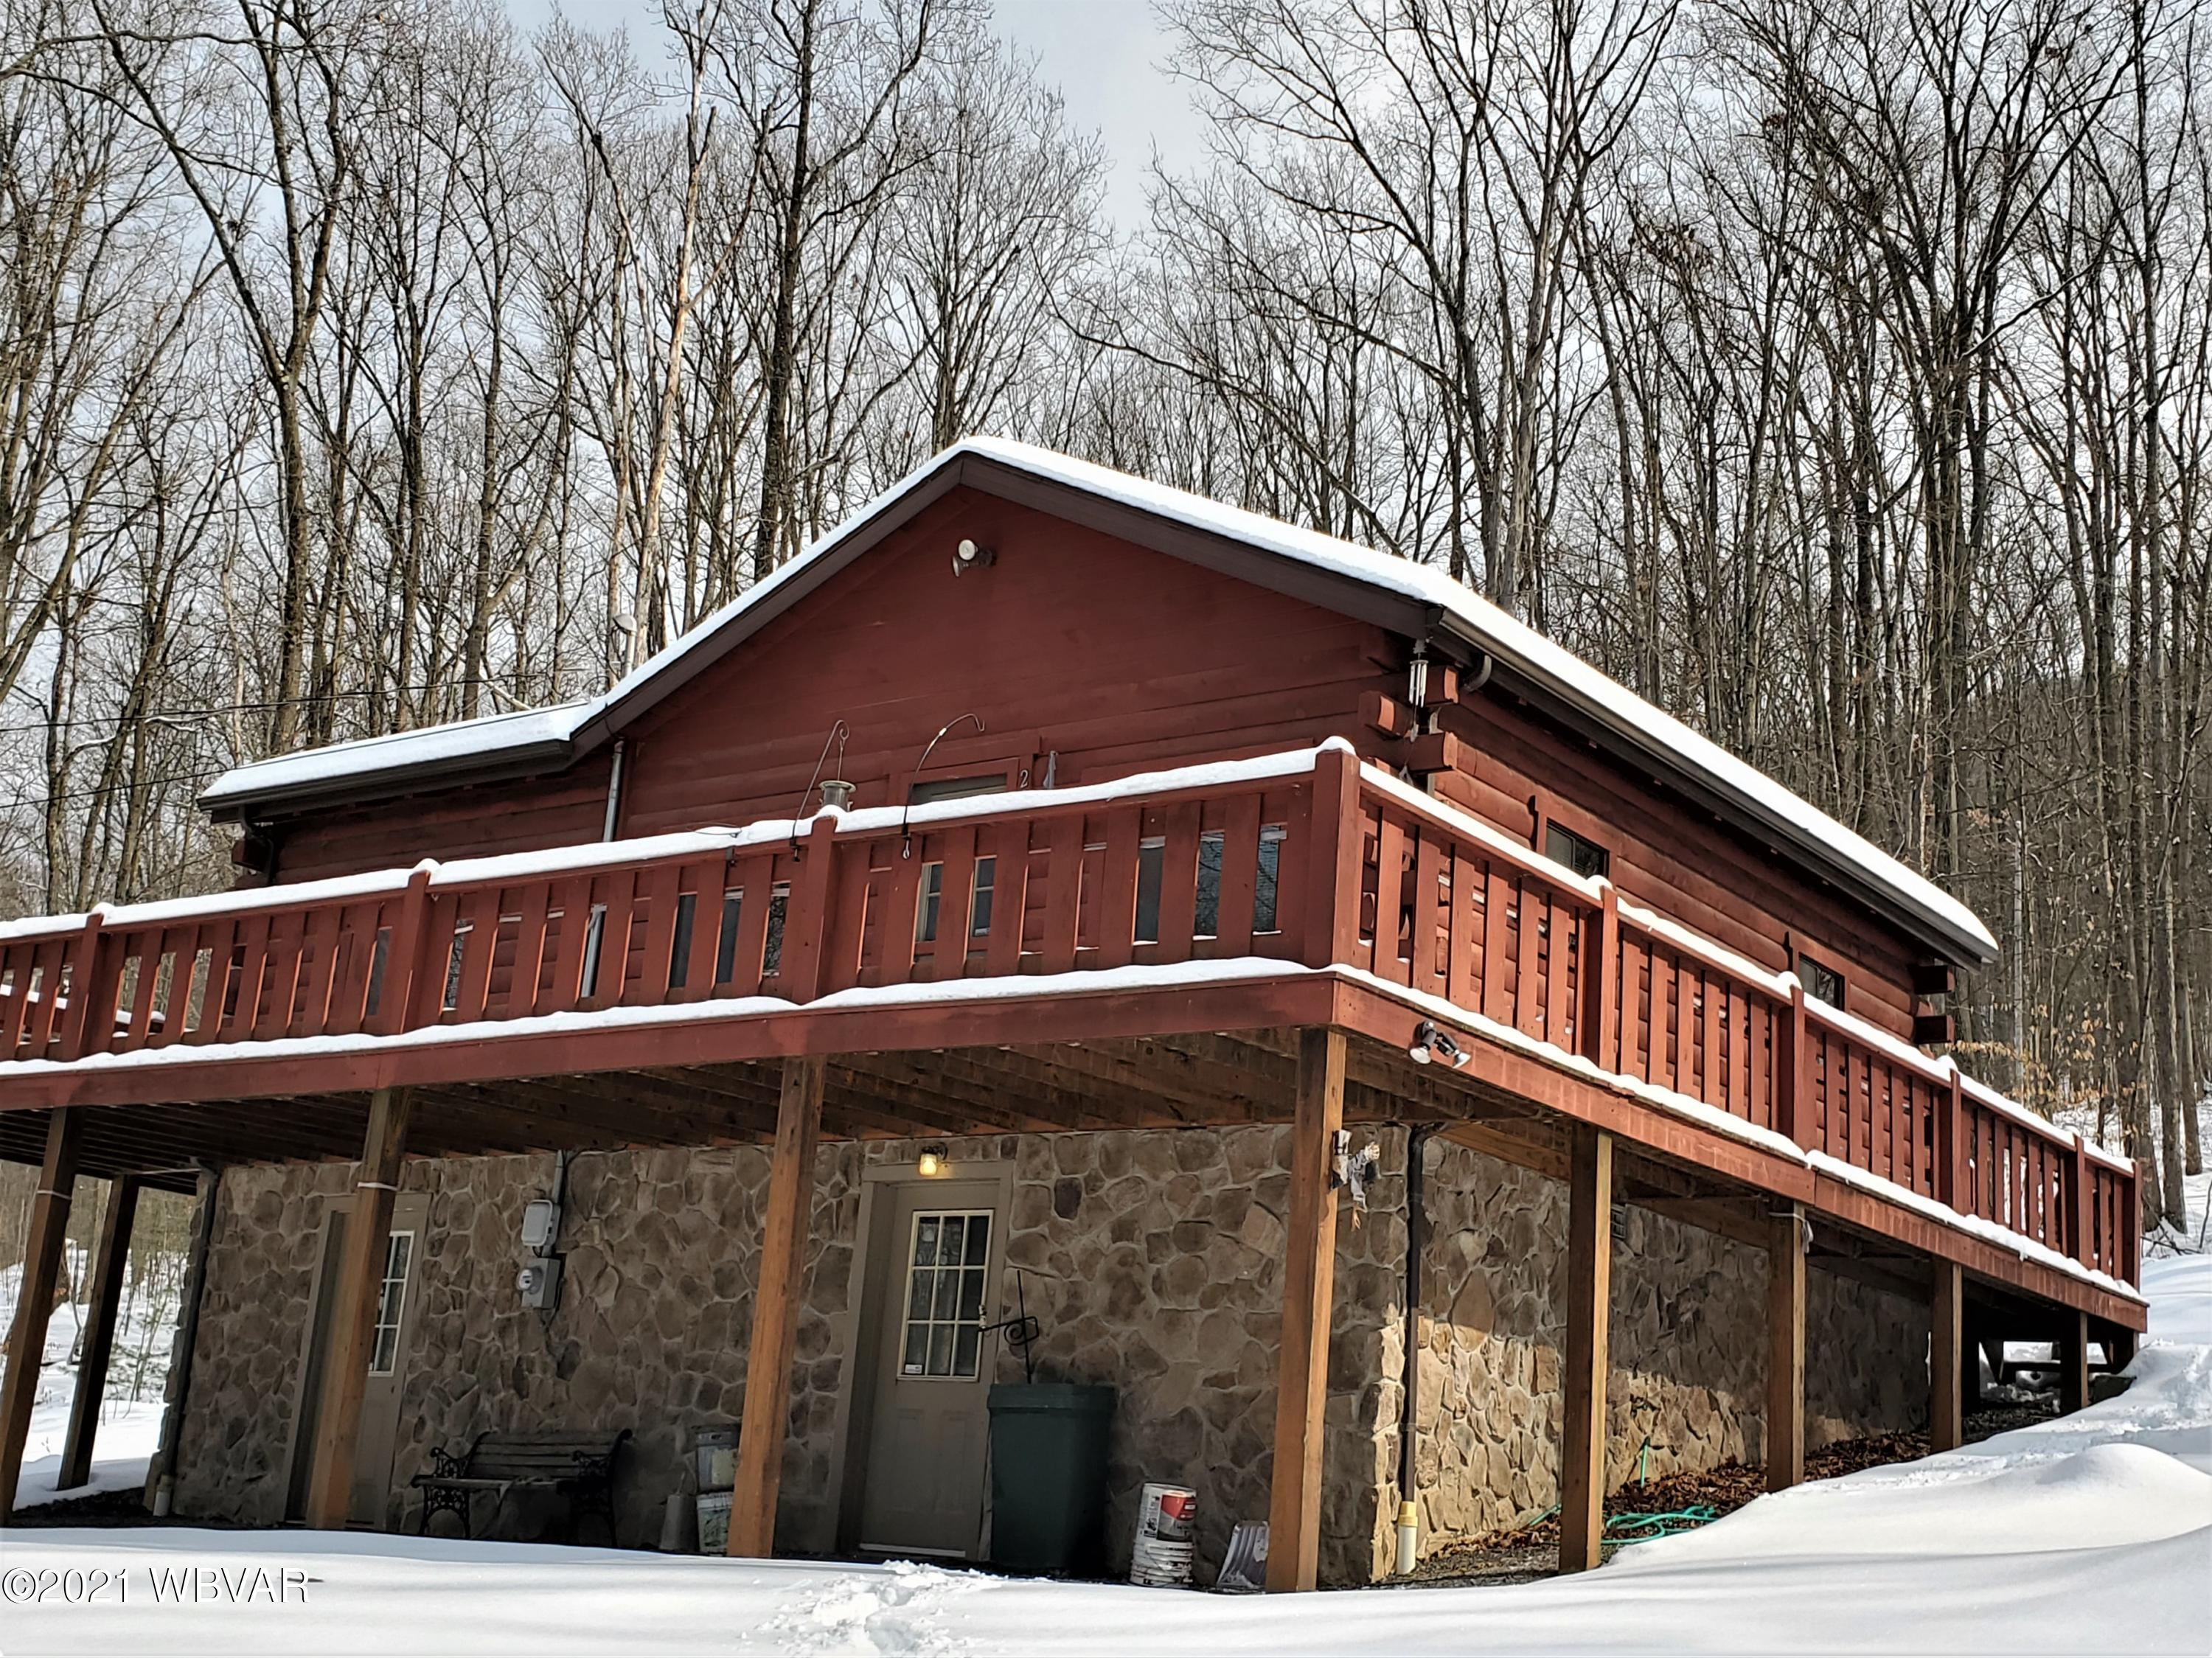 230 EAGLES NEST ROAD, Blanchard, PA 16826, 1 Bedroom Bedrooms, ,Cabin/vacation home,For sale,EAGLES NEST,WB-91925